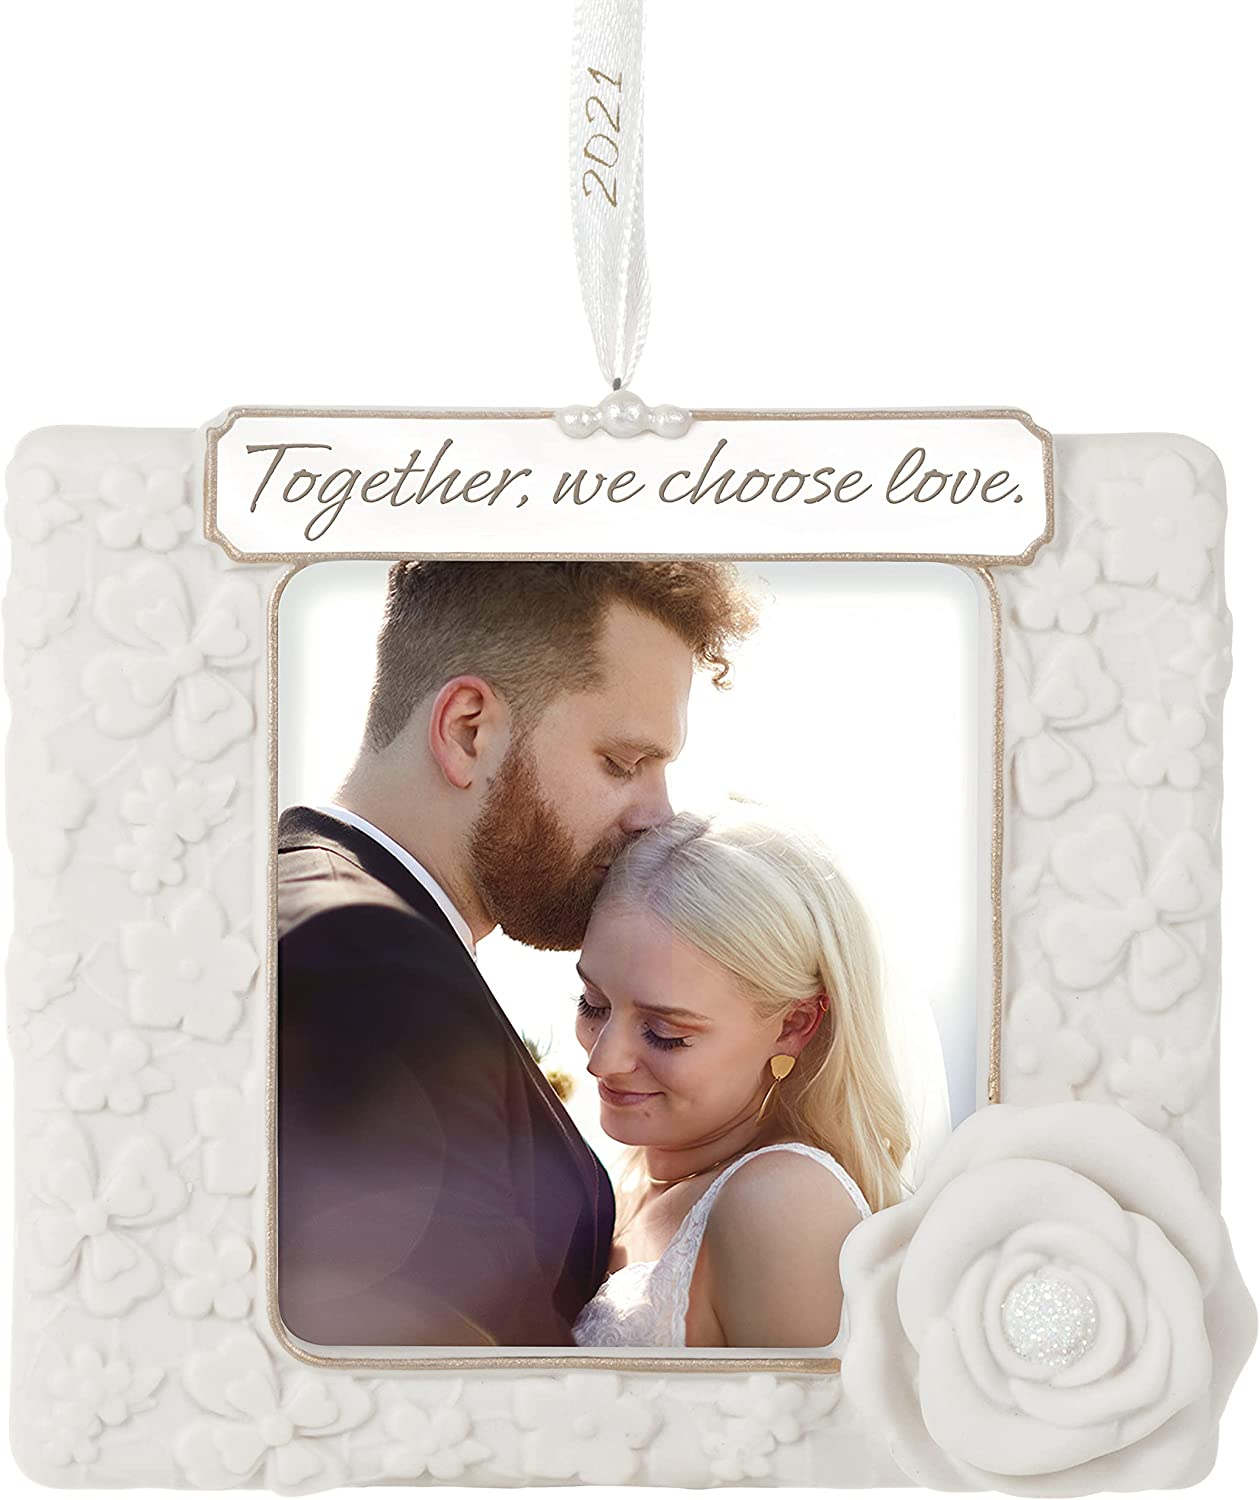 Keepsake Christmas Ornament Year Dated, Filled With Fun! Stocking 2021 Hallmark Keepsake Christmas Ornament 2021 Year Dated We Choose Love Photo Frame Porcelain Home Kitchen Amazon Com